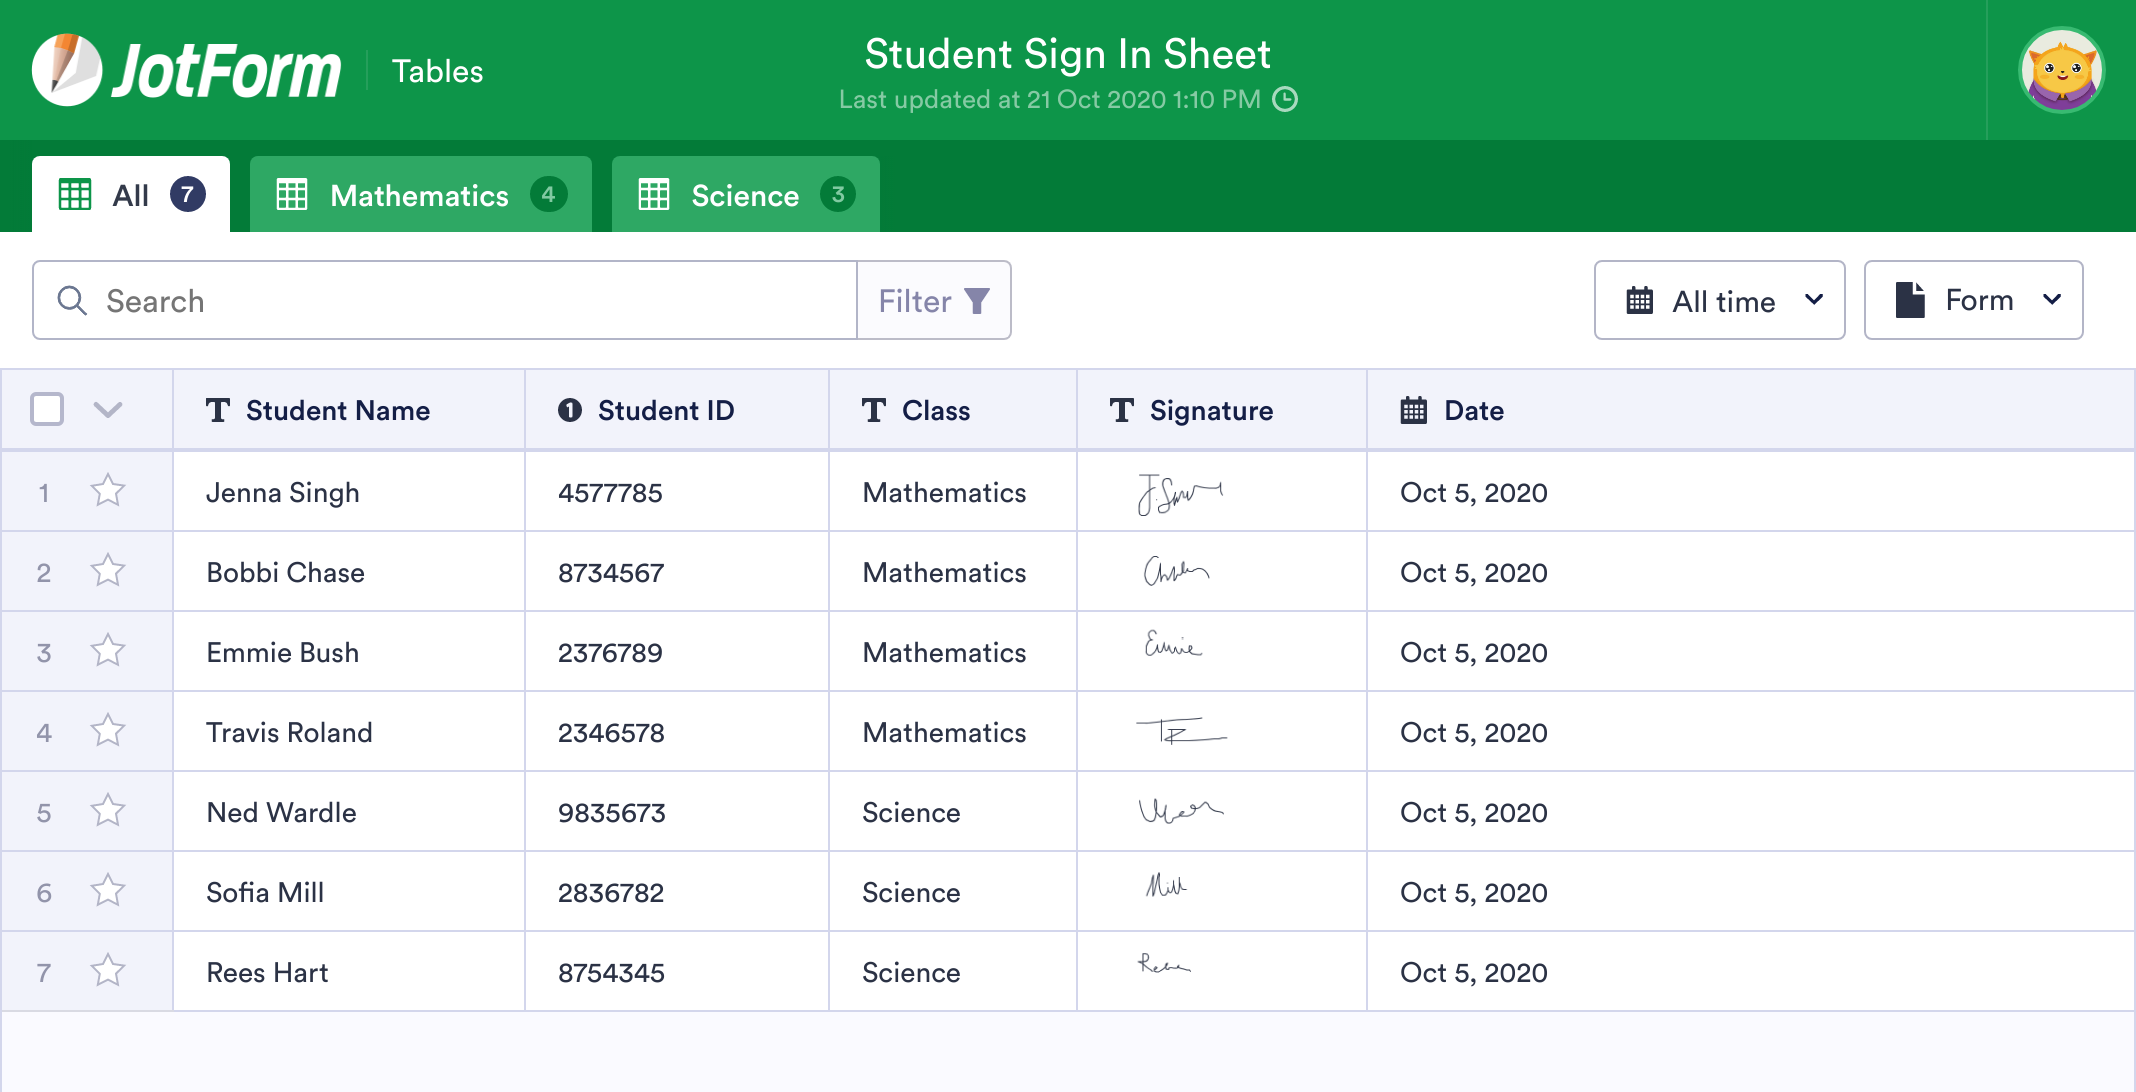 Student Sign In Sheet